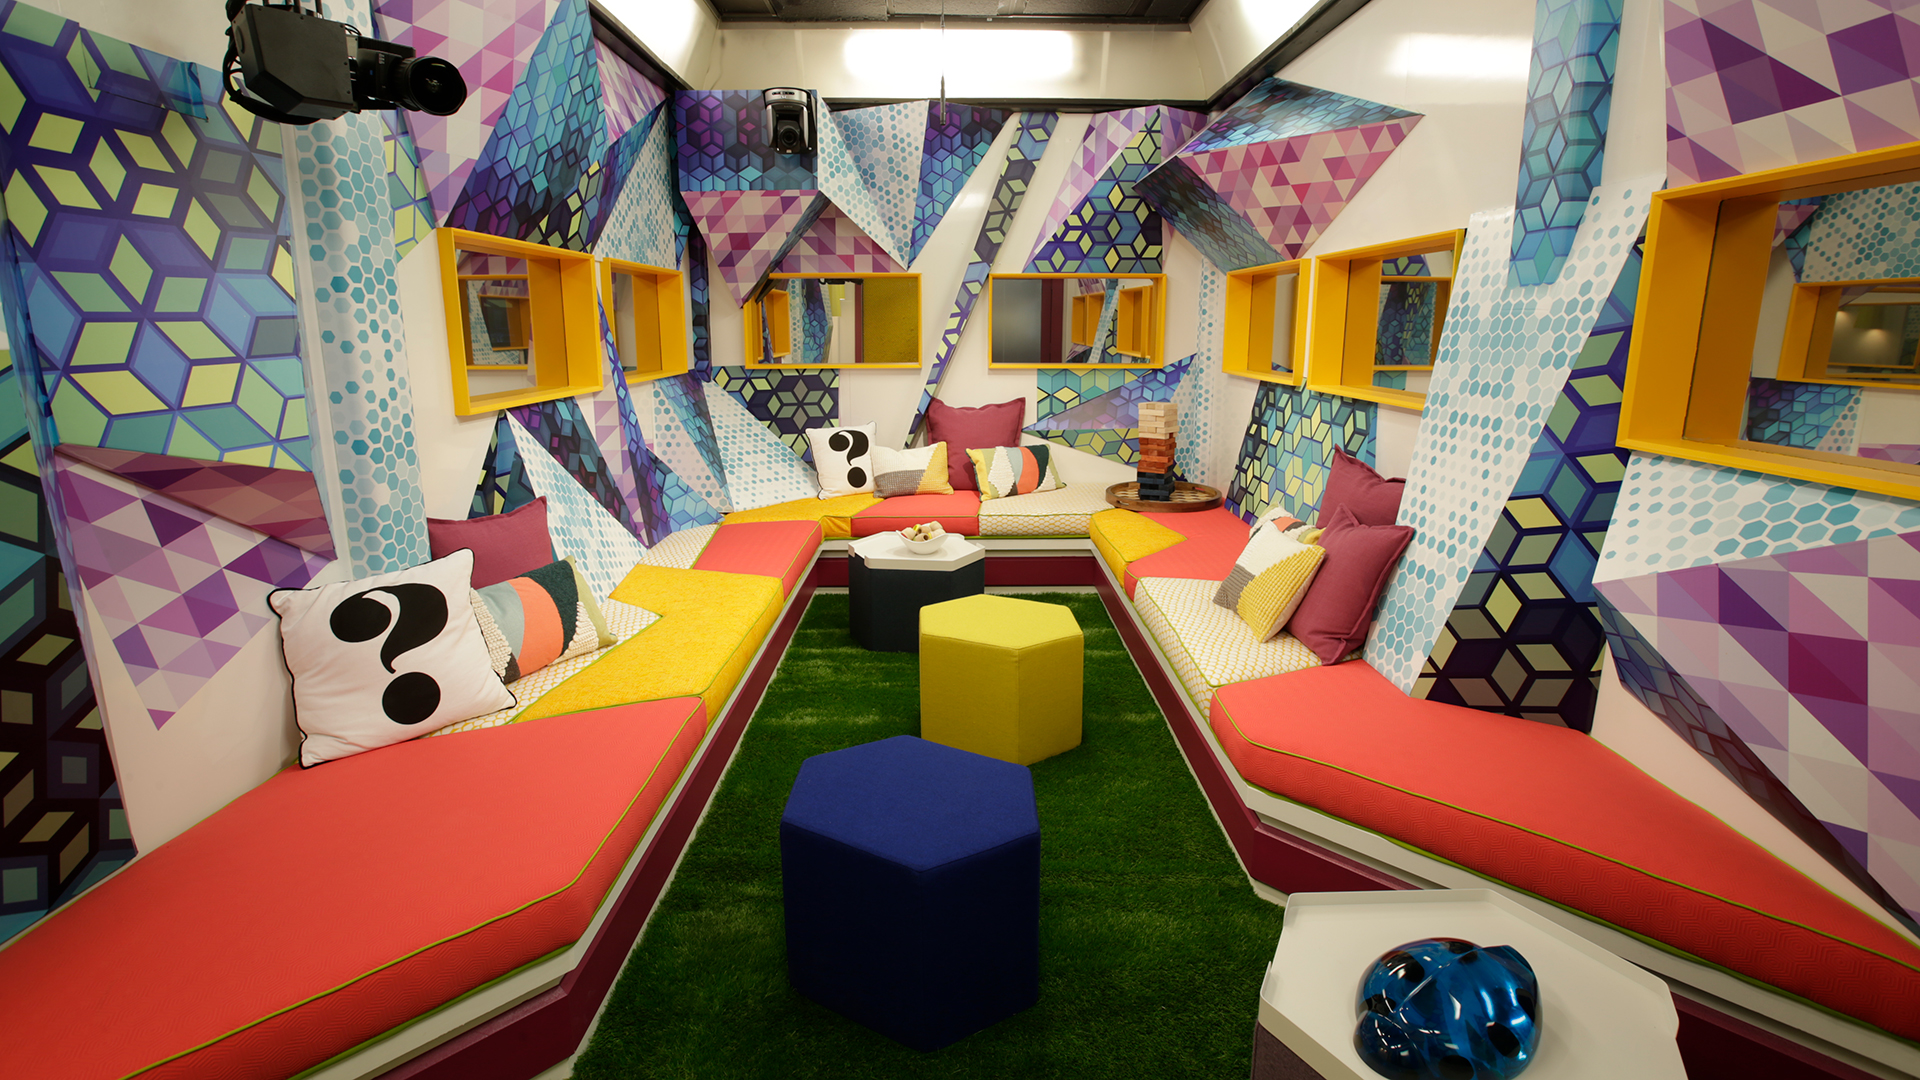 The Kaleidoscope Lounge is a party of patterns, with multi-dimensional shapes and colorful graphics.